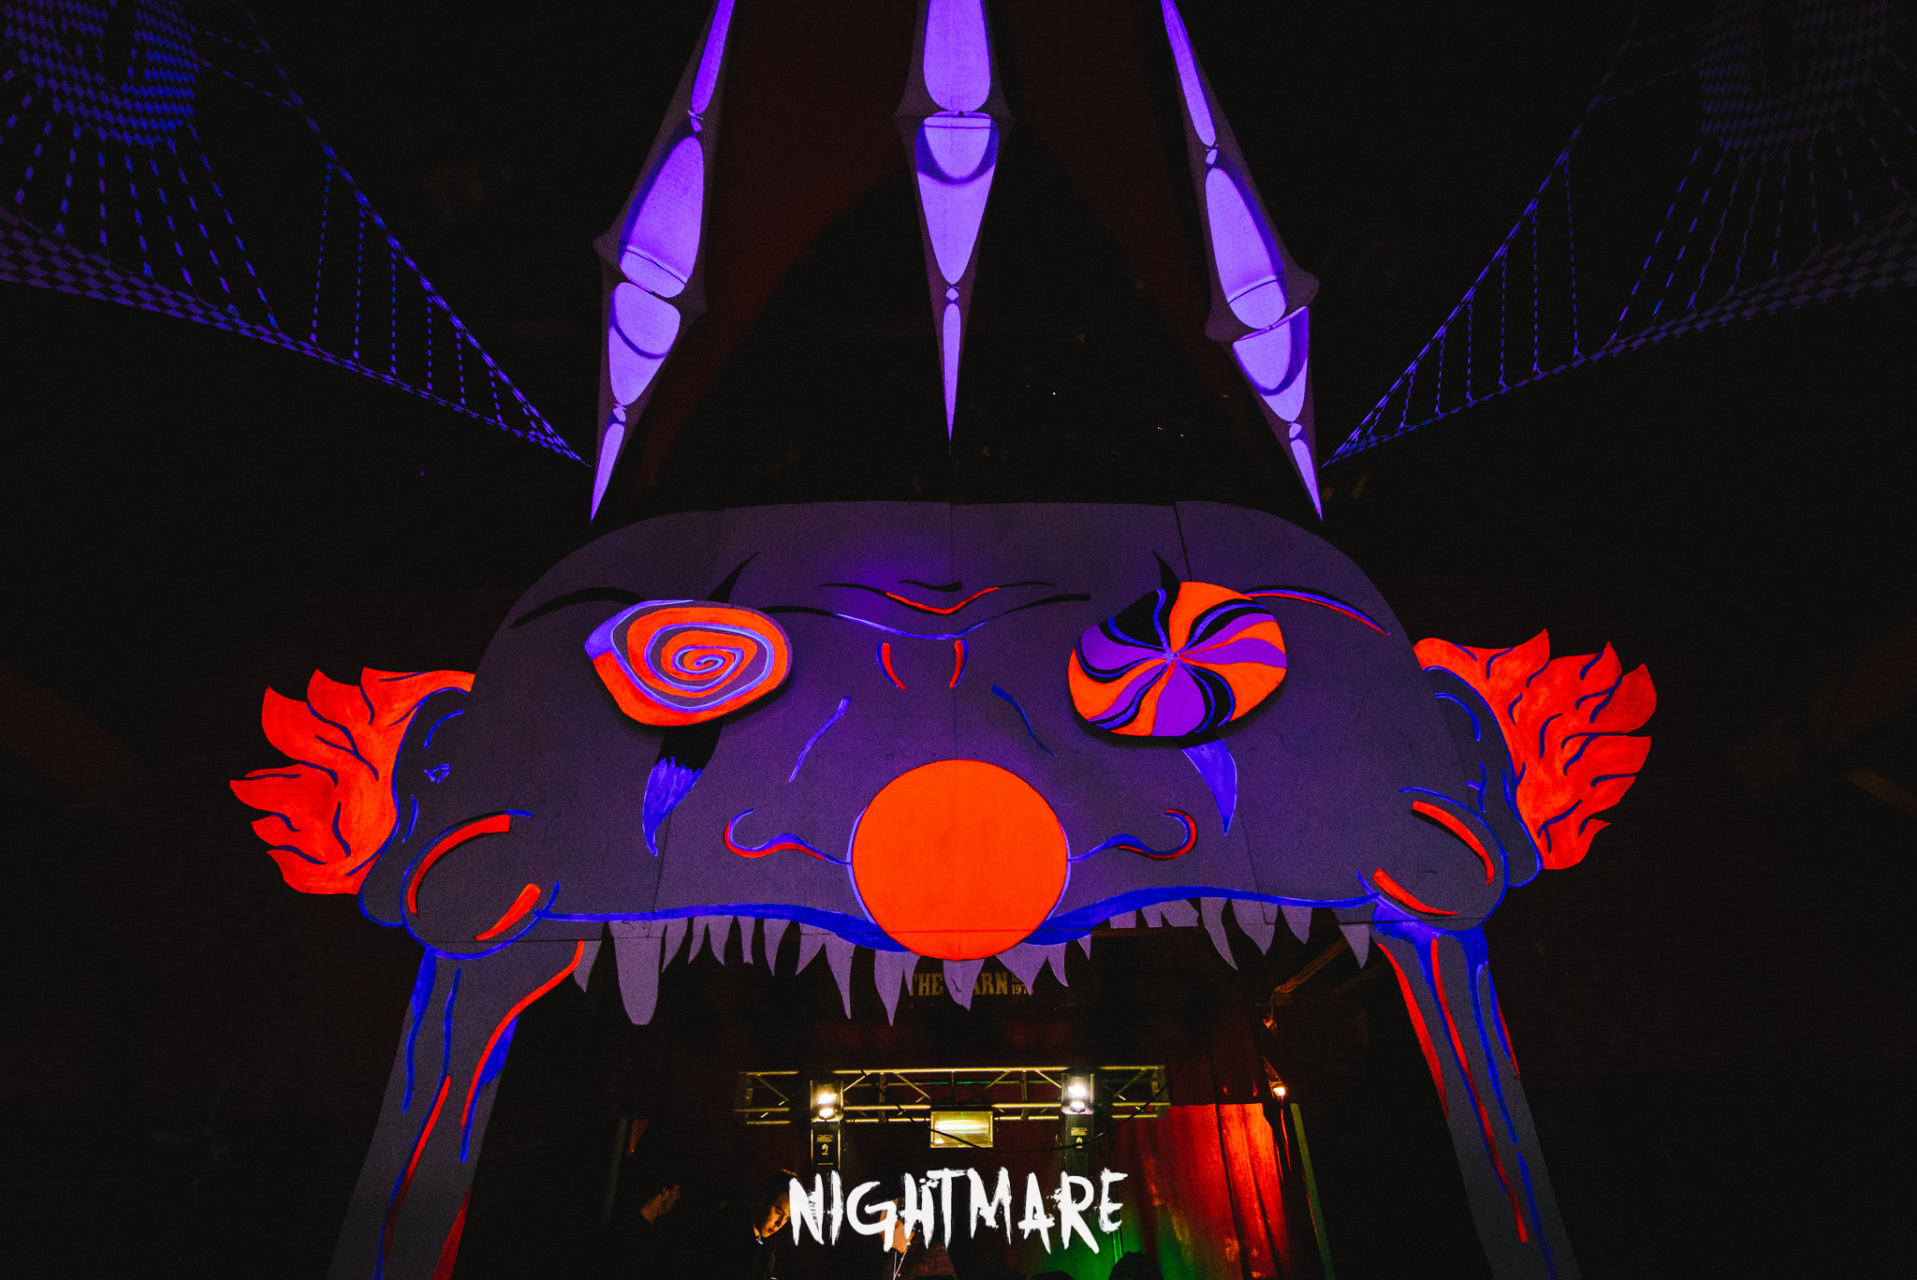 Nightmare_day1-17